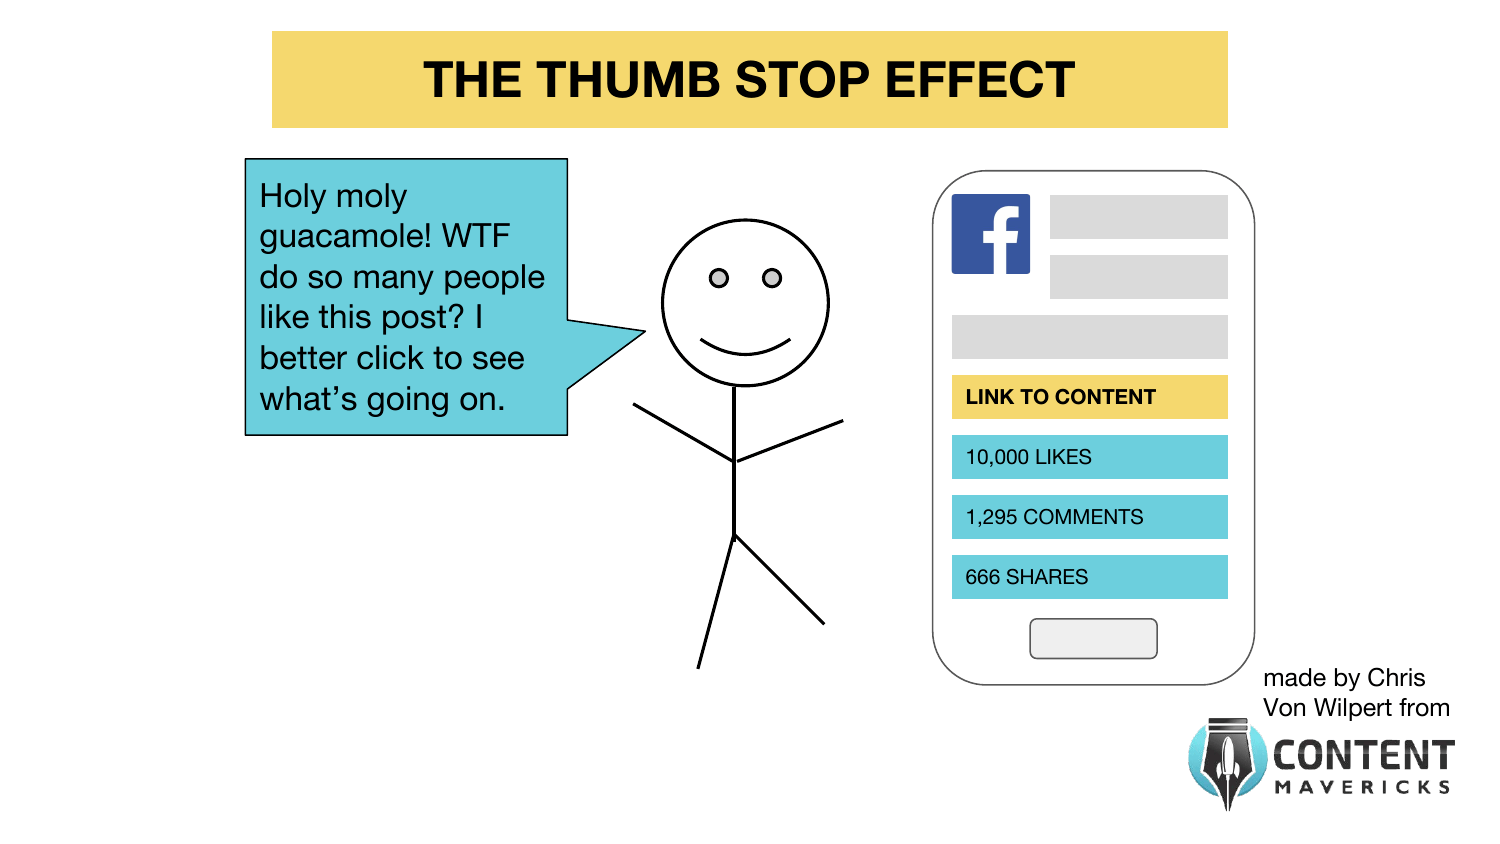 thumb stop effect image